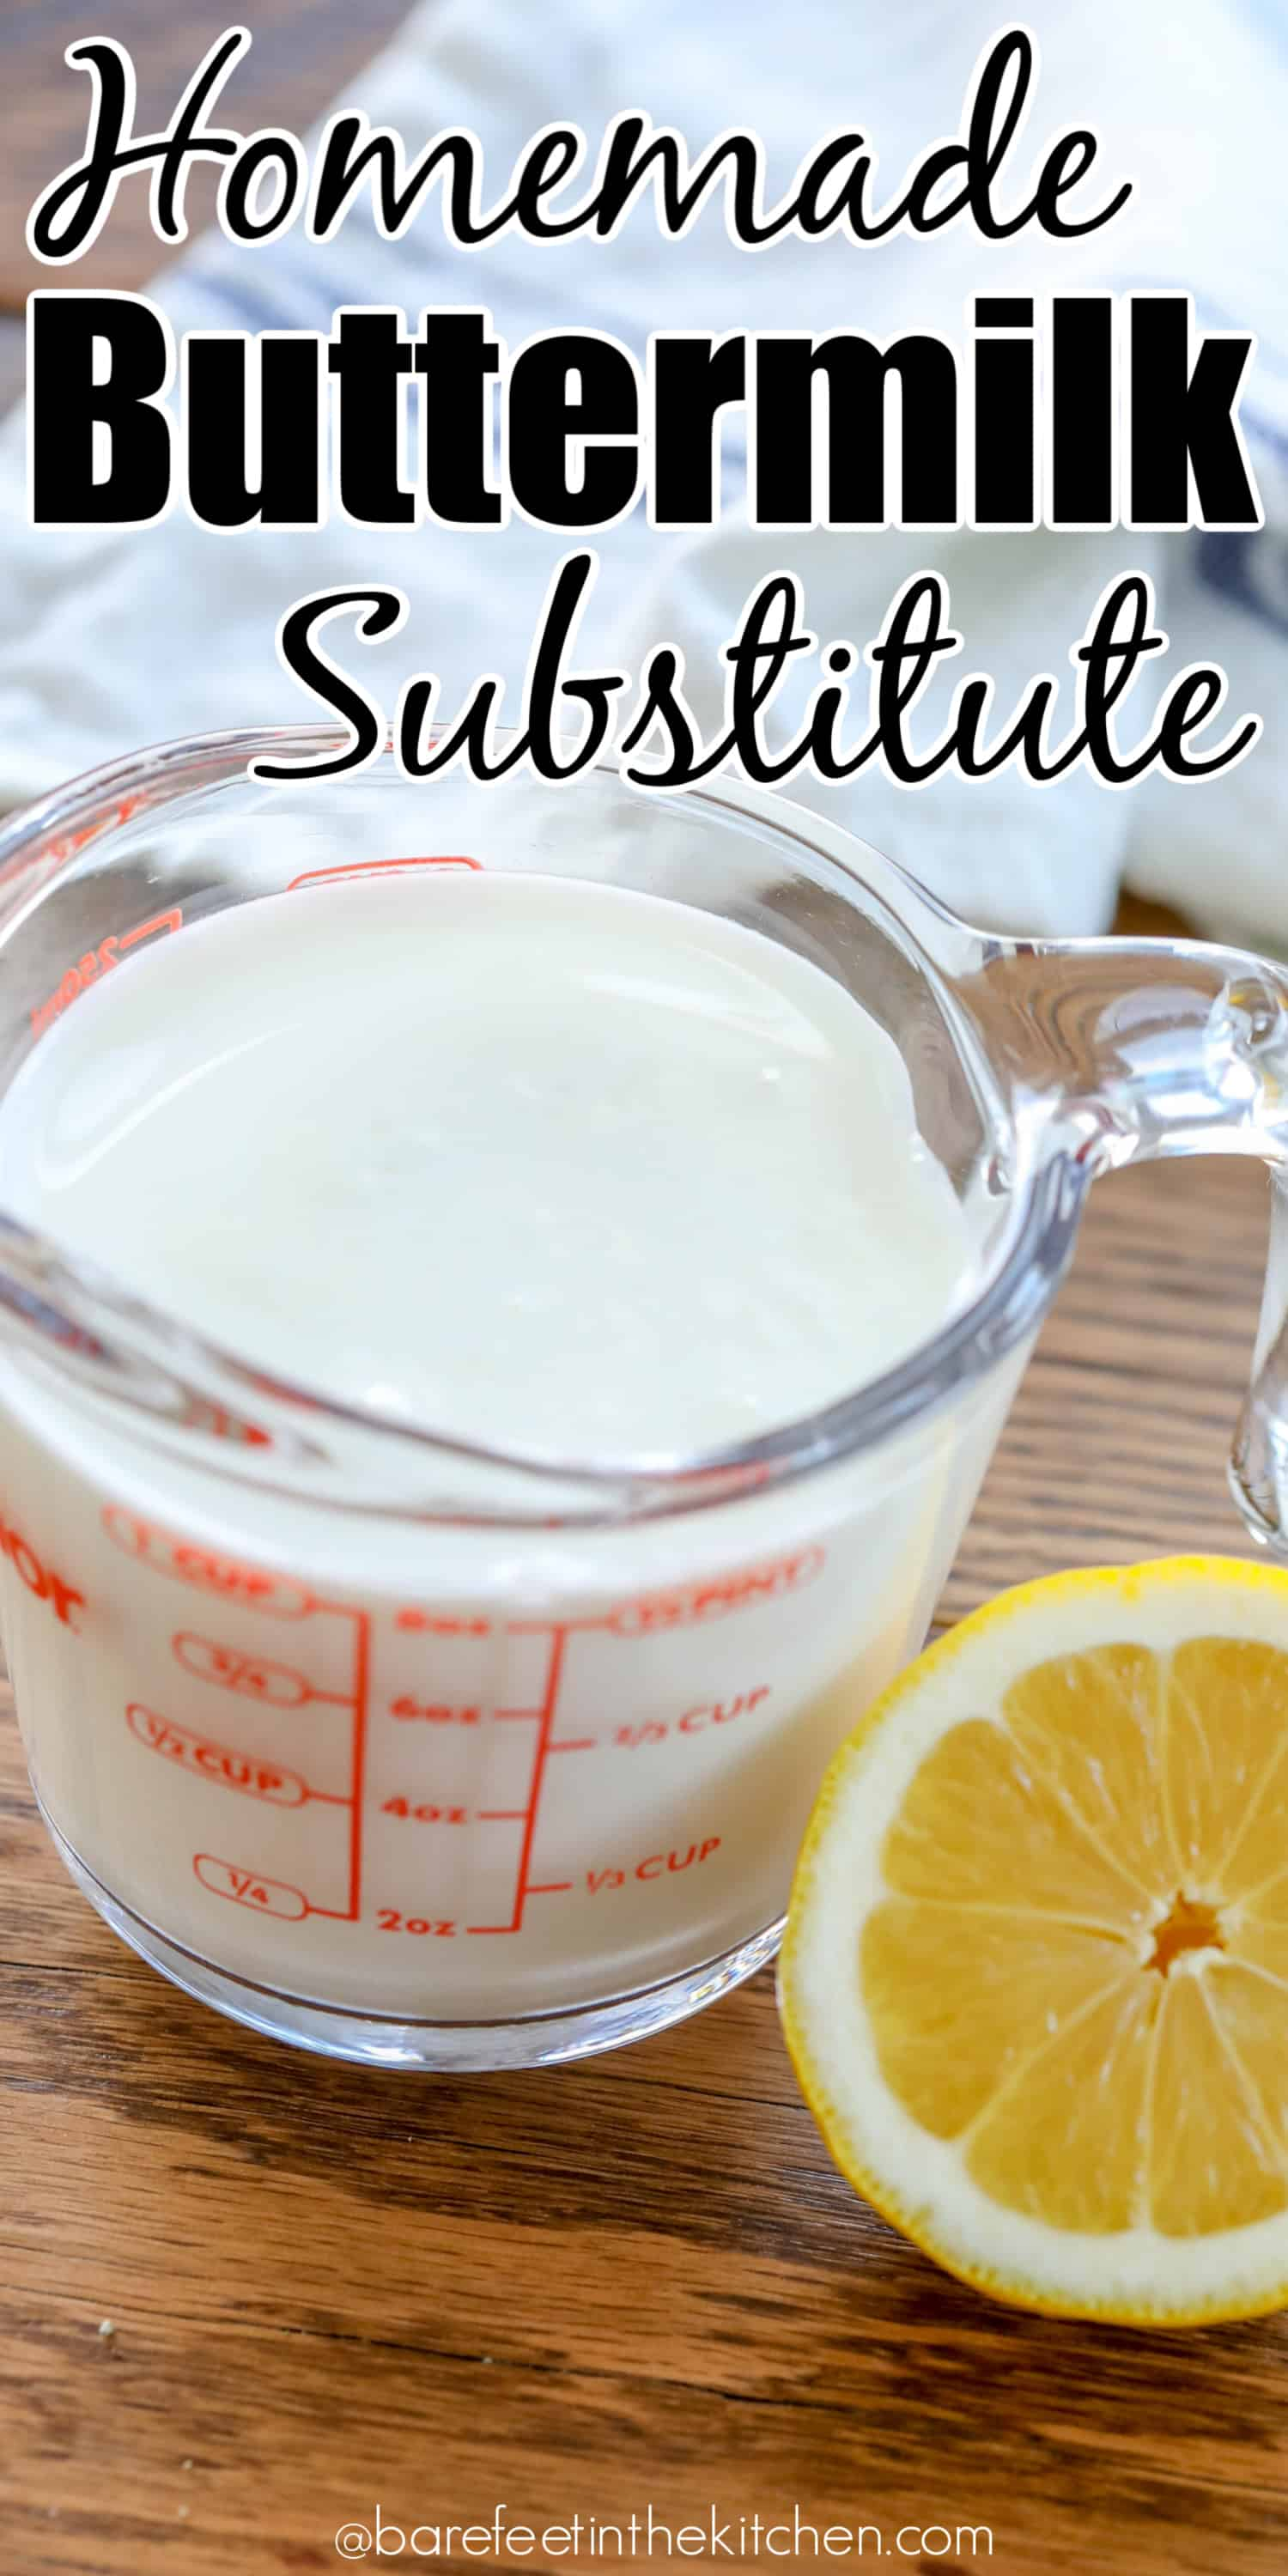 How To Make A Buttermilk Substitute - Barefeet In The Kitchen